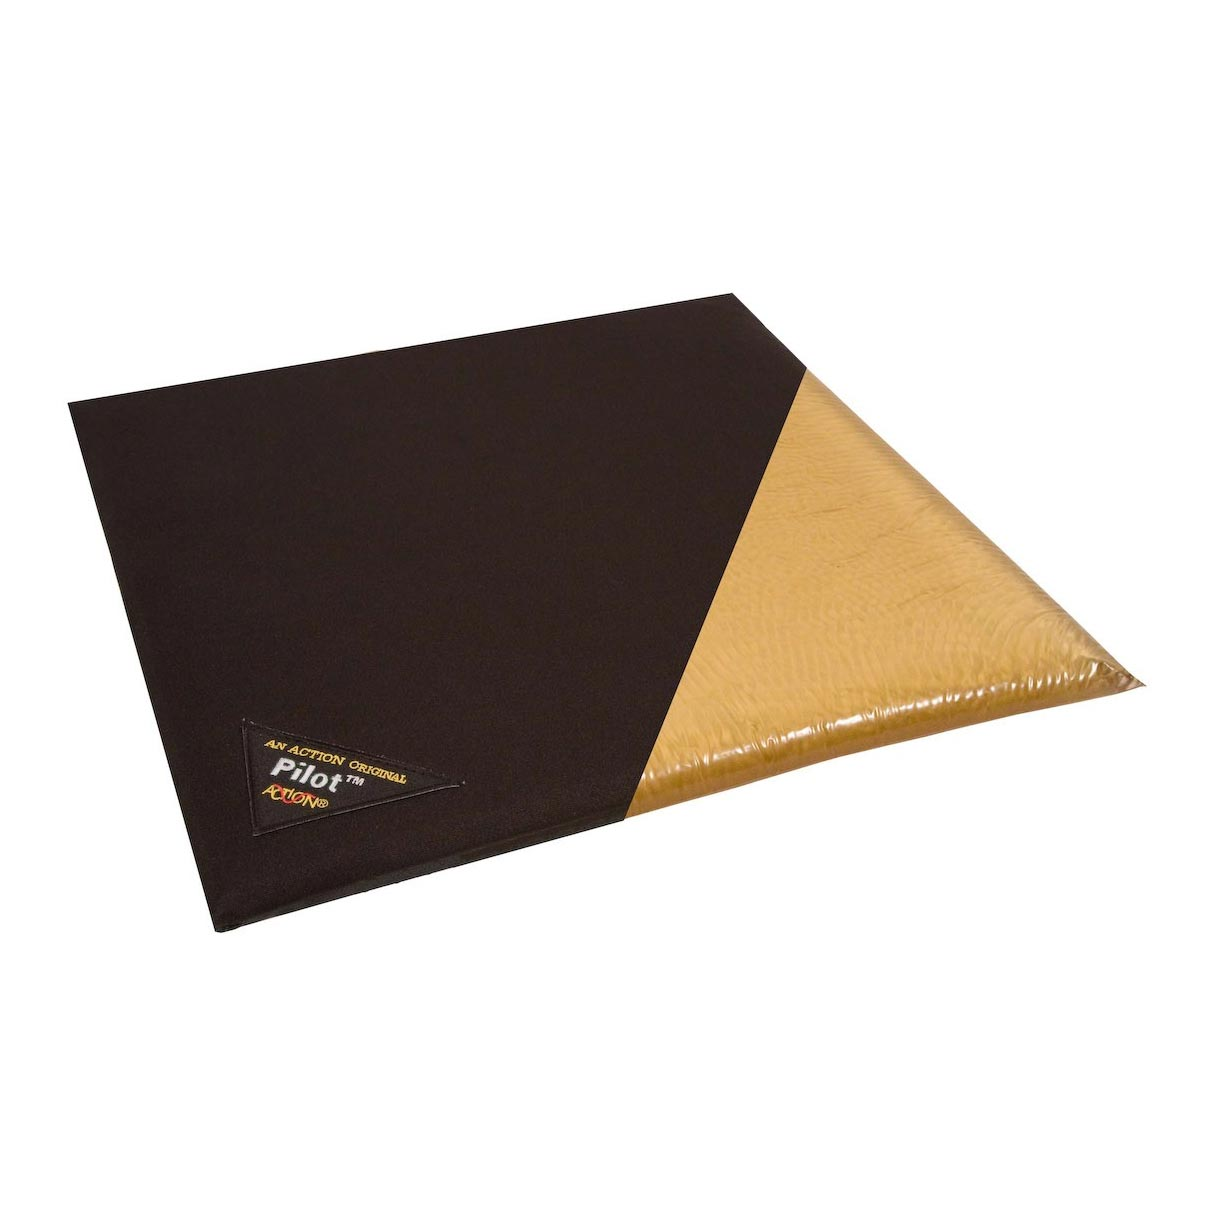 Action Products Pilot cushion with cover